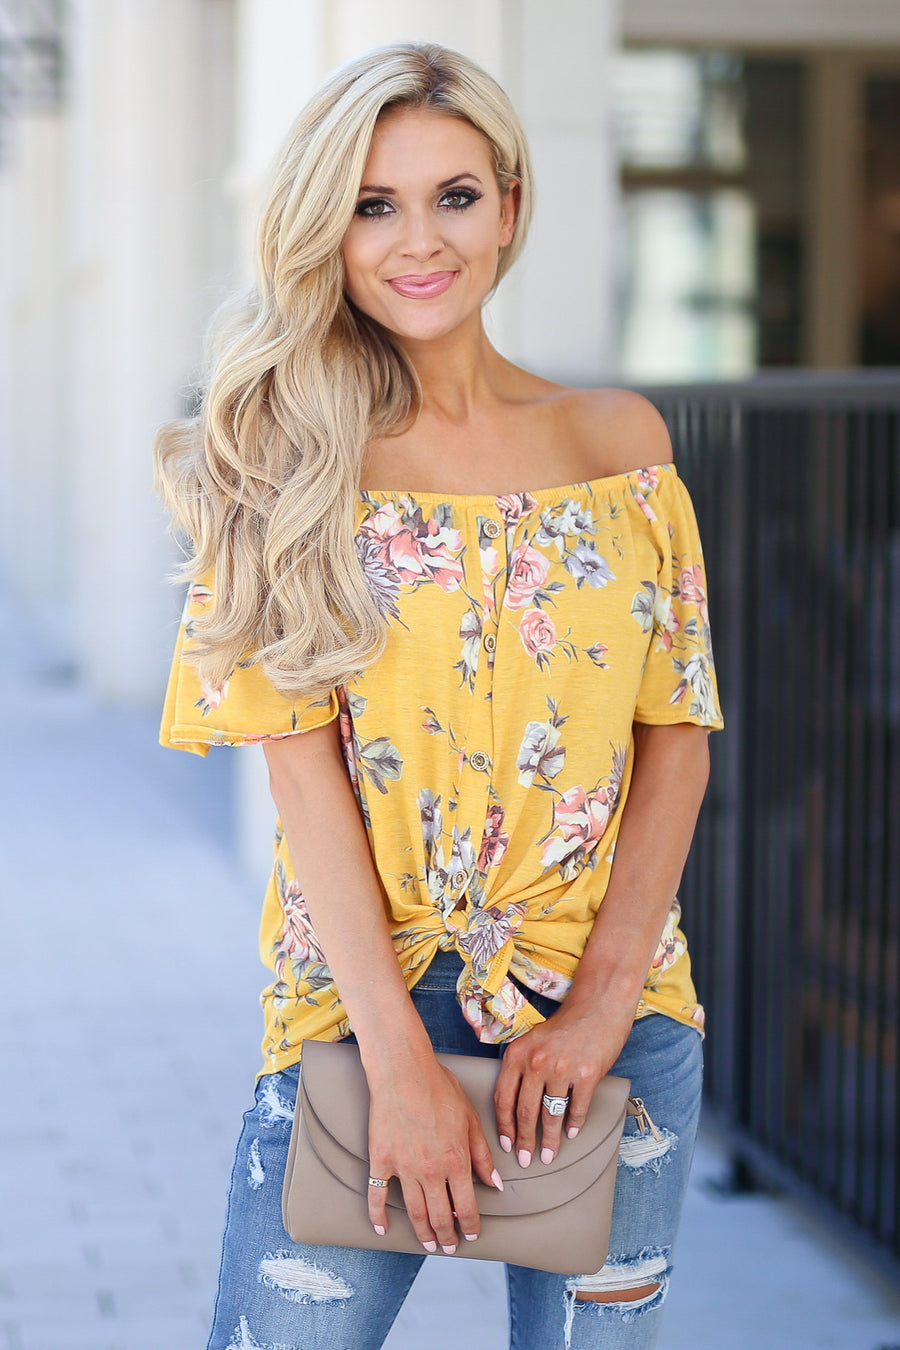 Add Sun Top - Goldie marigold color women's cute off the shoulder top, trendy tie front closet candy boutique 1